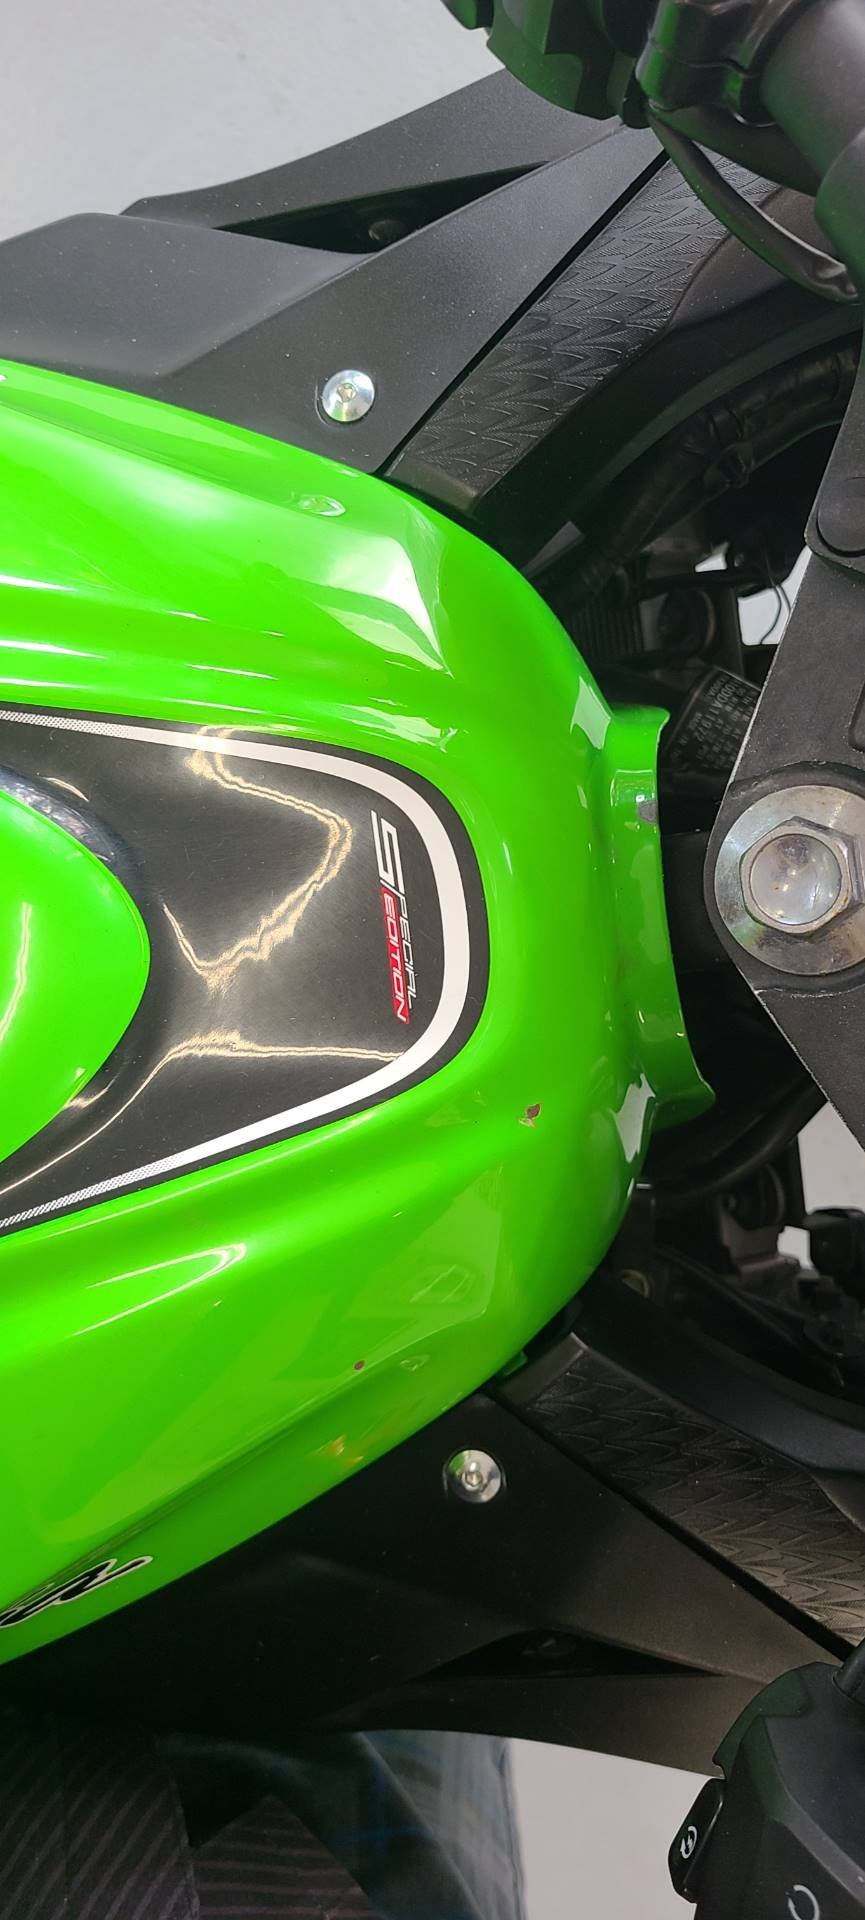 2013 Kawasaki Ninja® 300 in Mechanicsburg, Pennsylvania - Photo 8